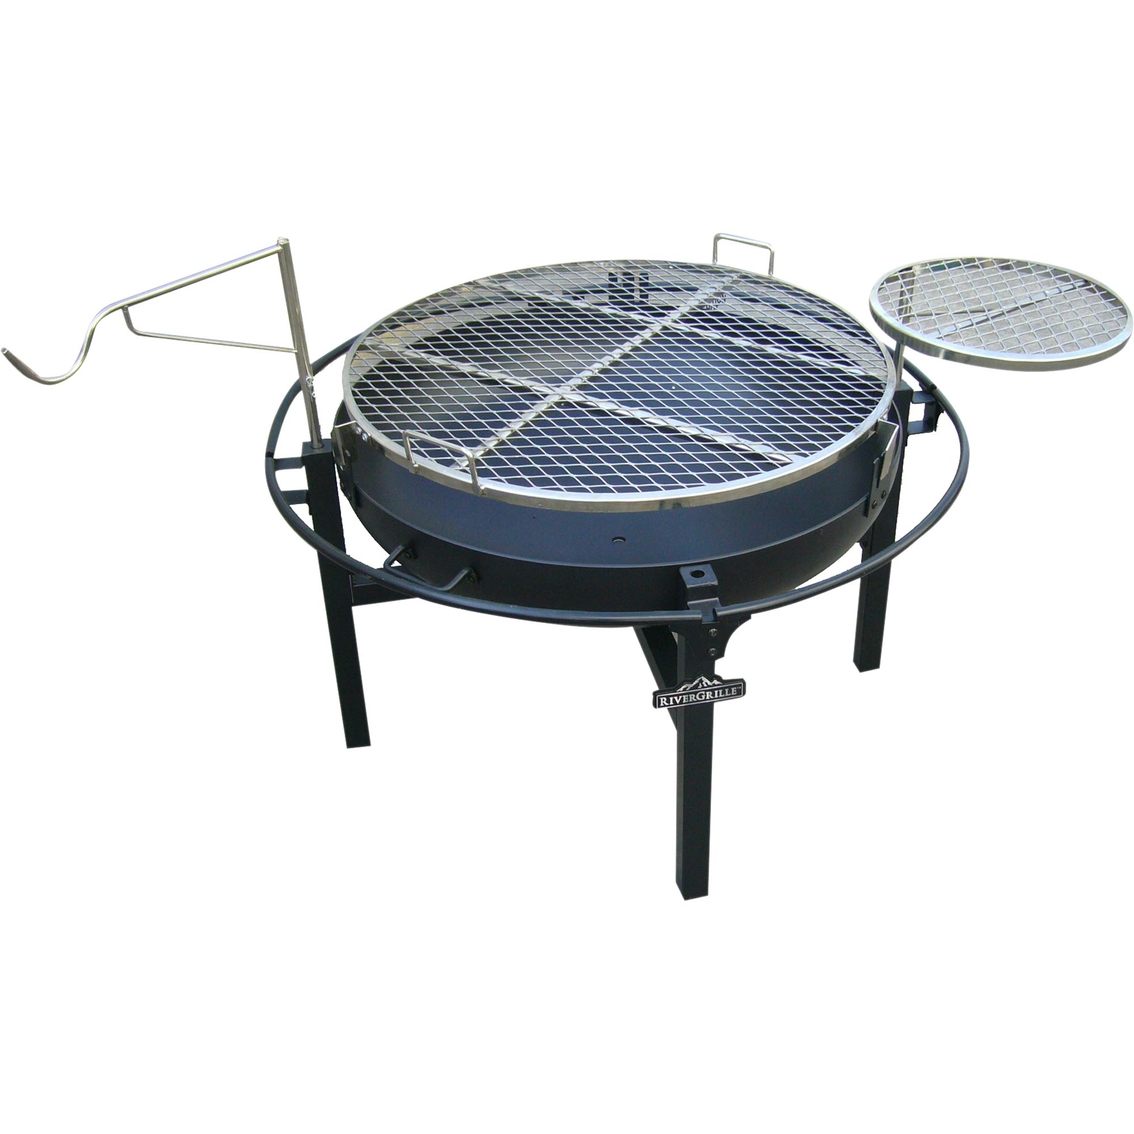 RiverGrille 31 In. Cowboy Fire Pit Grill - Rivergrille 31 In. Cowboy Fire Pit Grill Charcoal Grills More